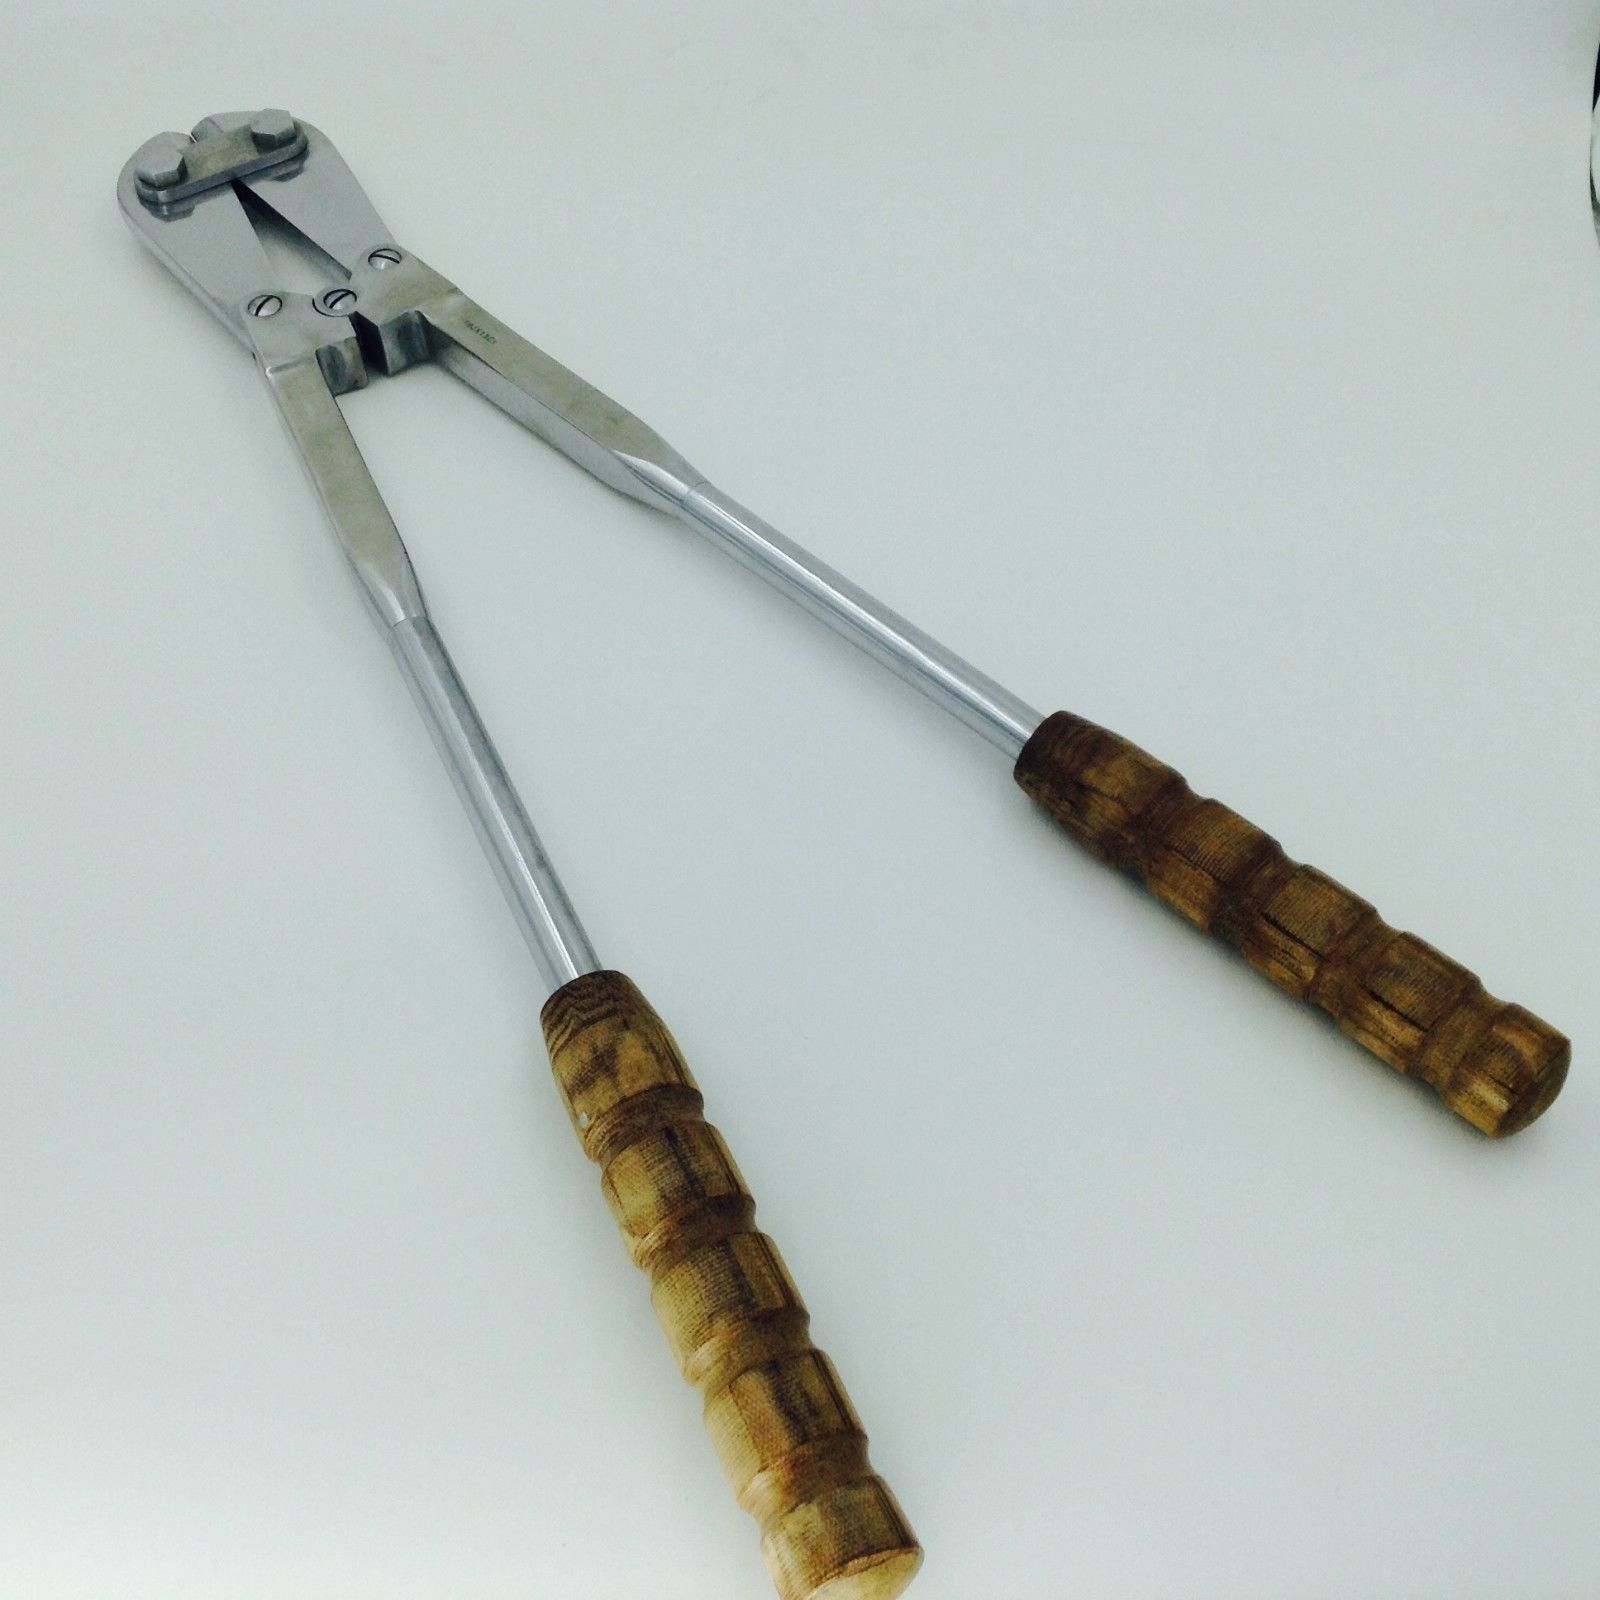 Best Pin And Wire Cutter Up To 6mm Orthopedics Veterinary Instruments